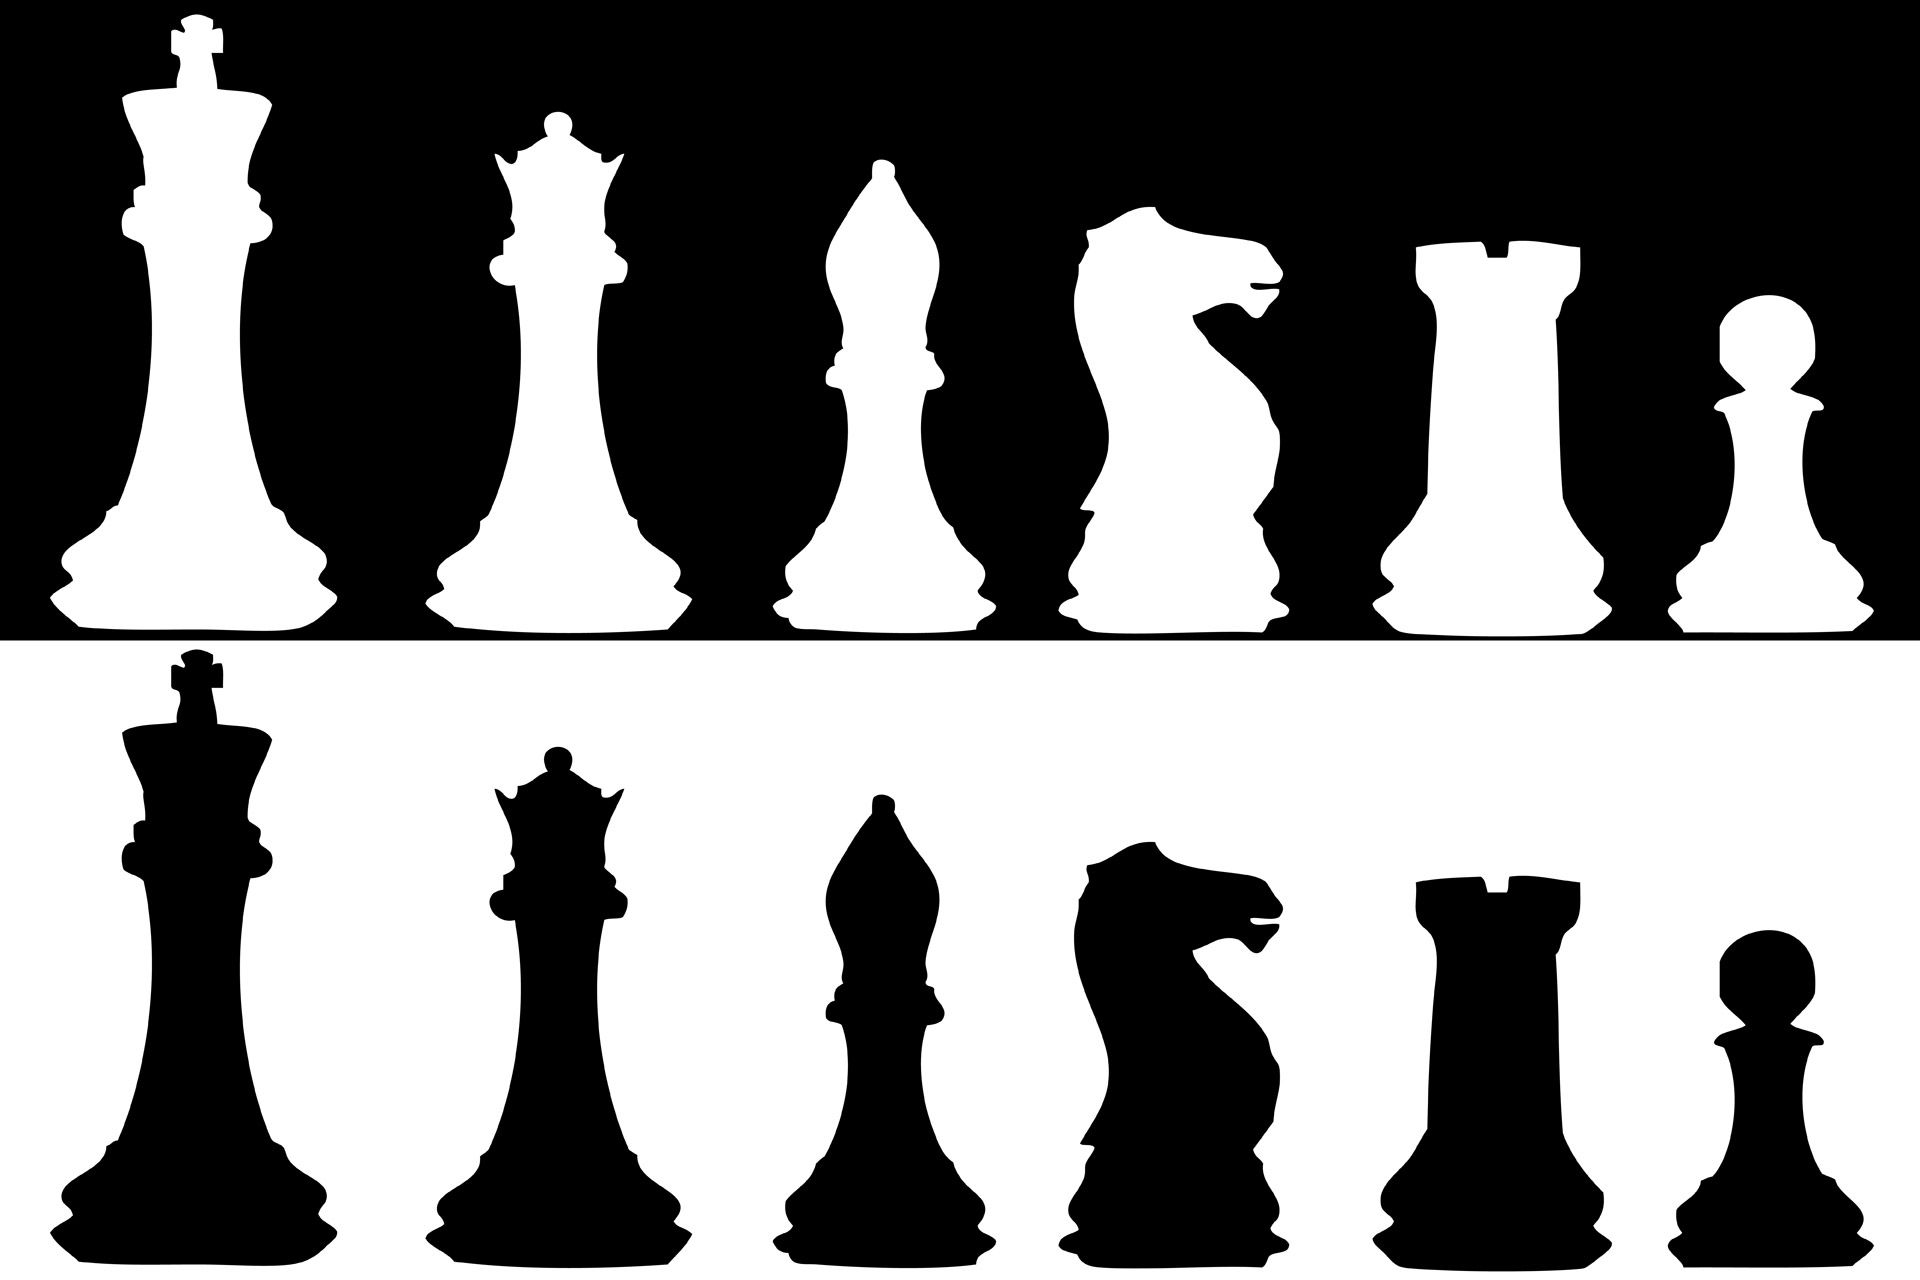 Chess Pieces Clip Art